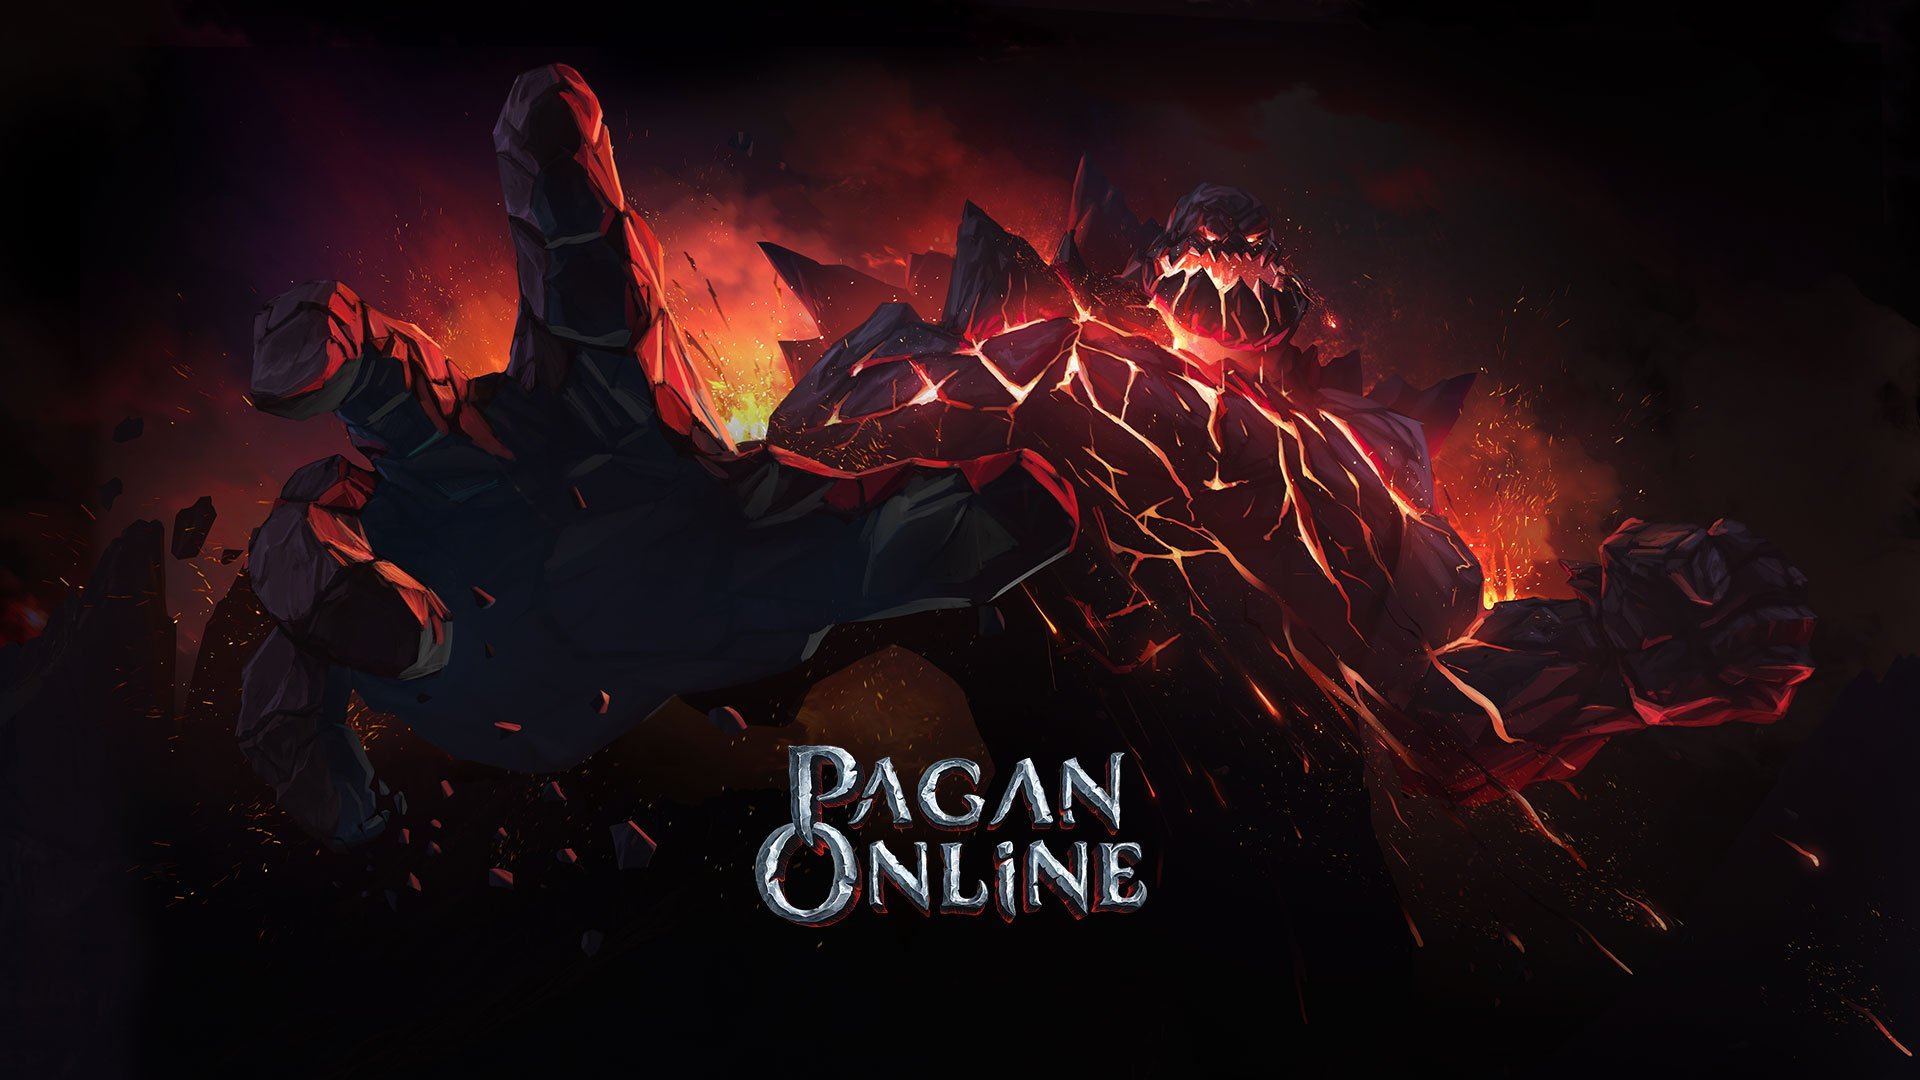 Pagan Online Buy Now